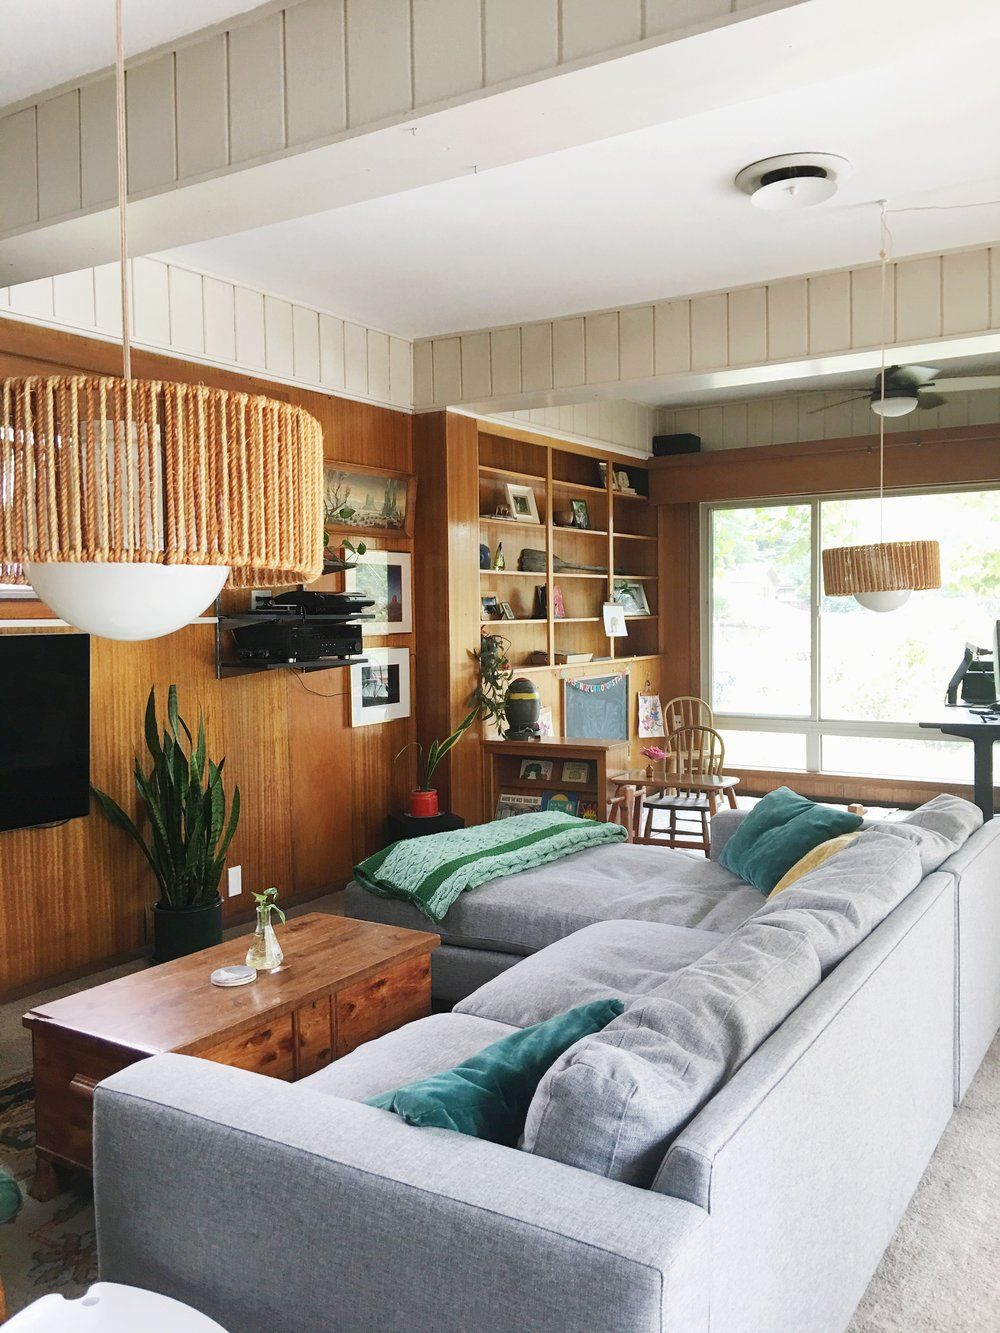 House Wood Paneling: Cozy & Collected Mid-Century Modern Den: Embracing Dated